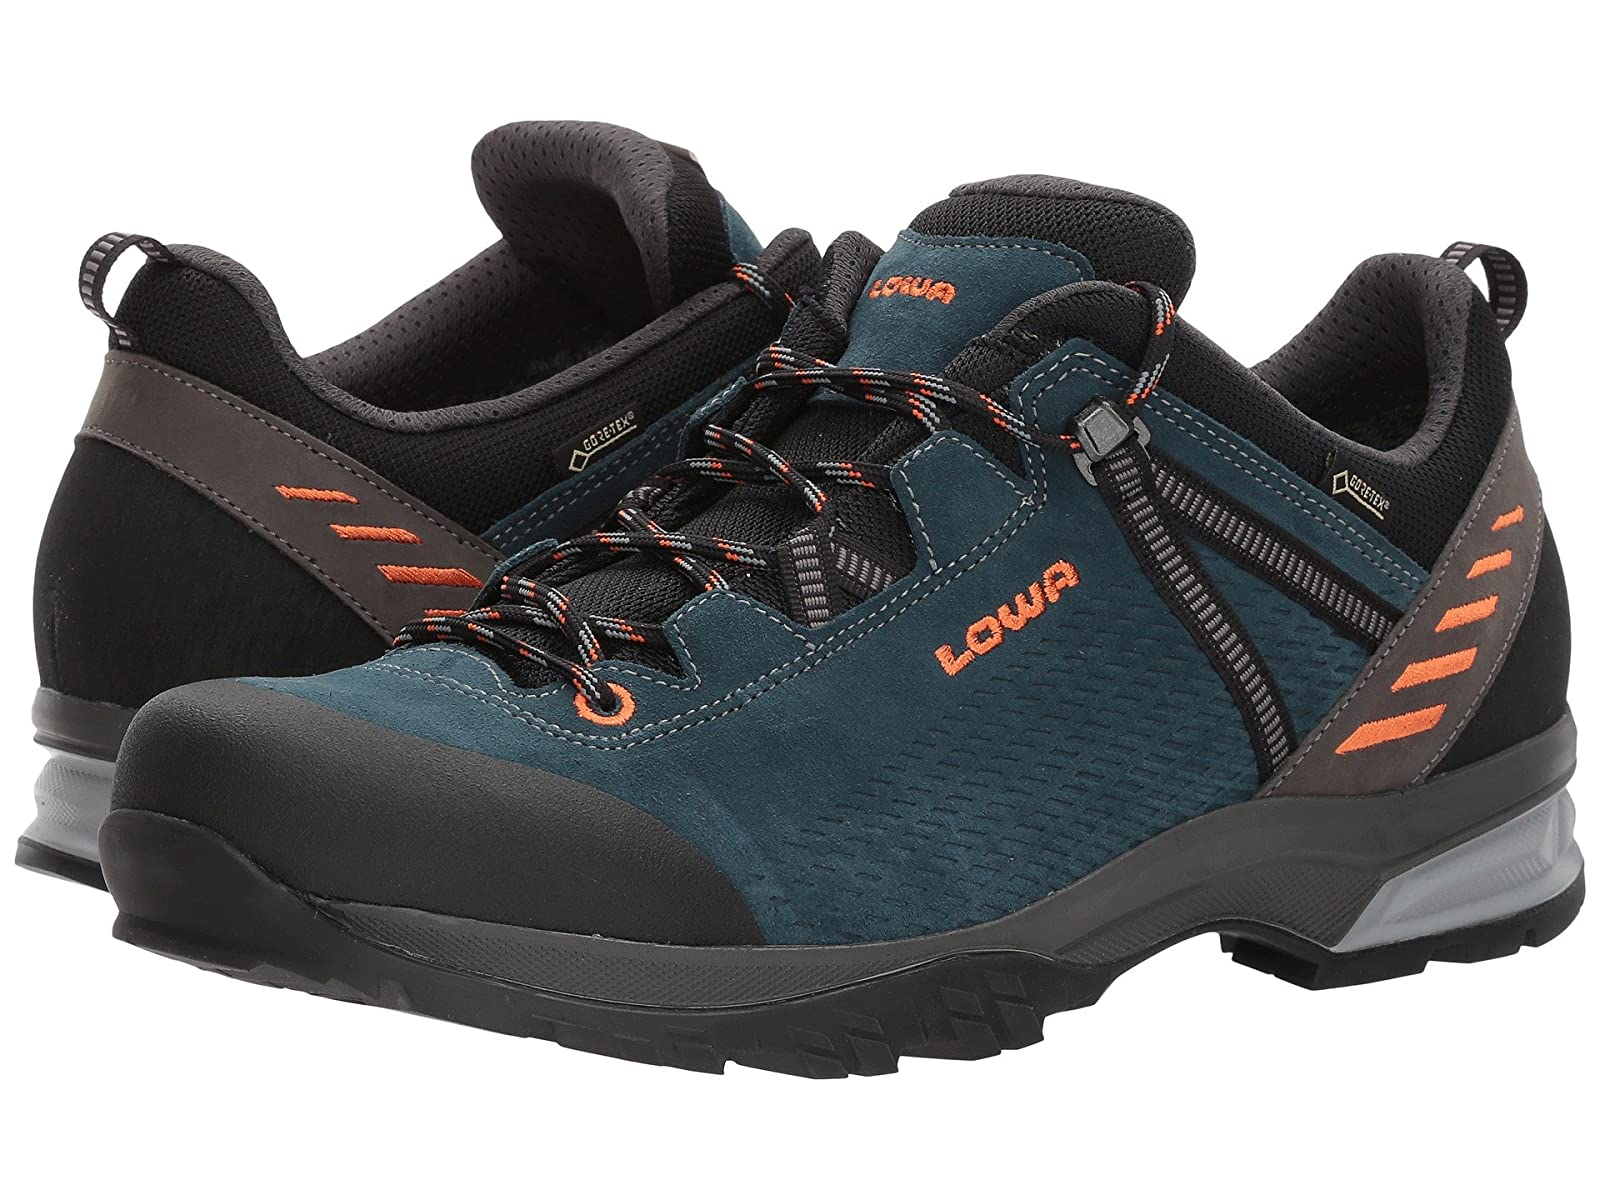 Lowa Arco GTX LoAtmospheric grades have affordable shoes